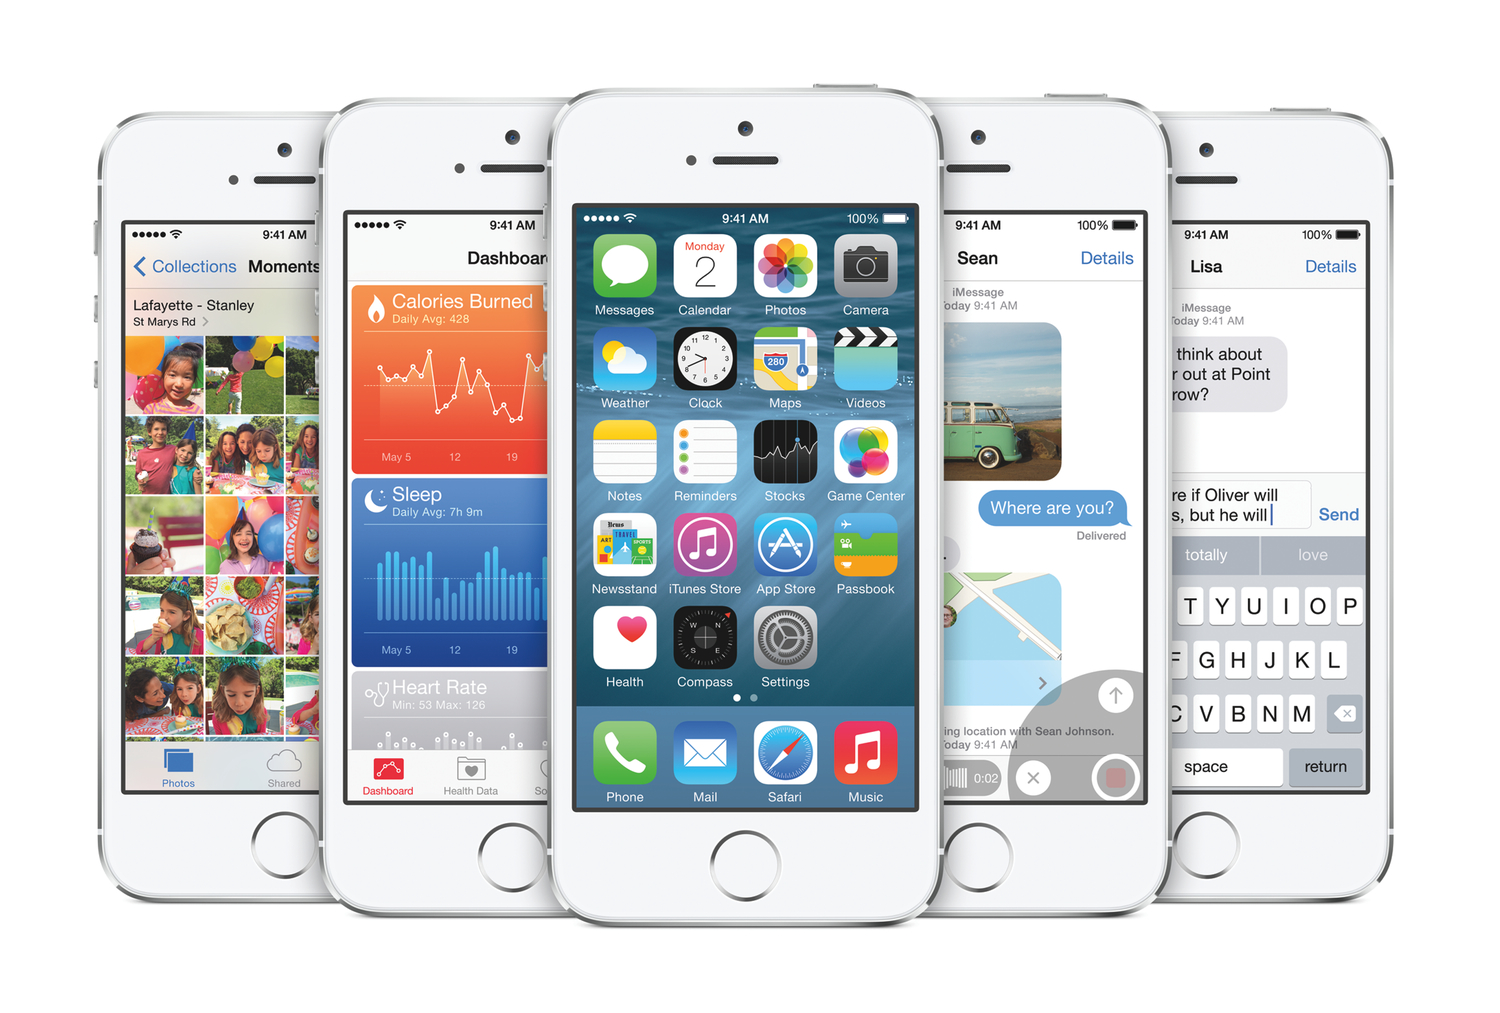 Apple releases iOS 8, now available for iPhone, iPad, and iPod touch!